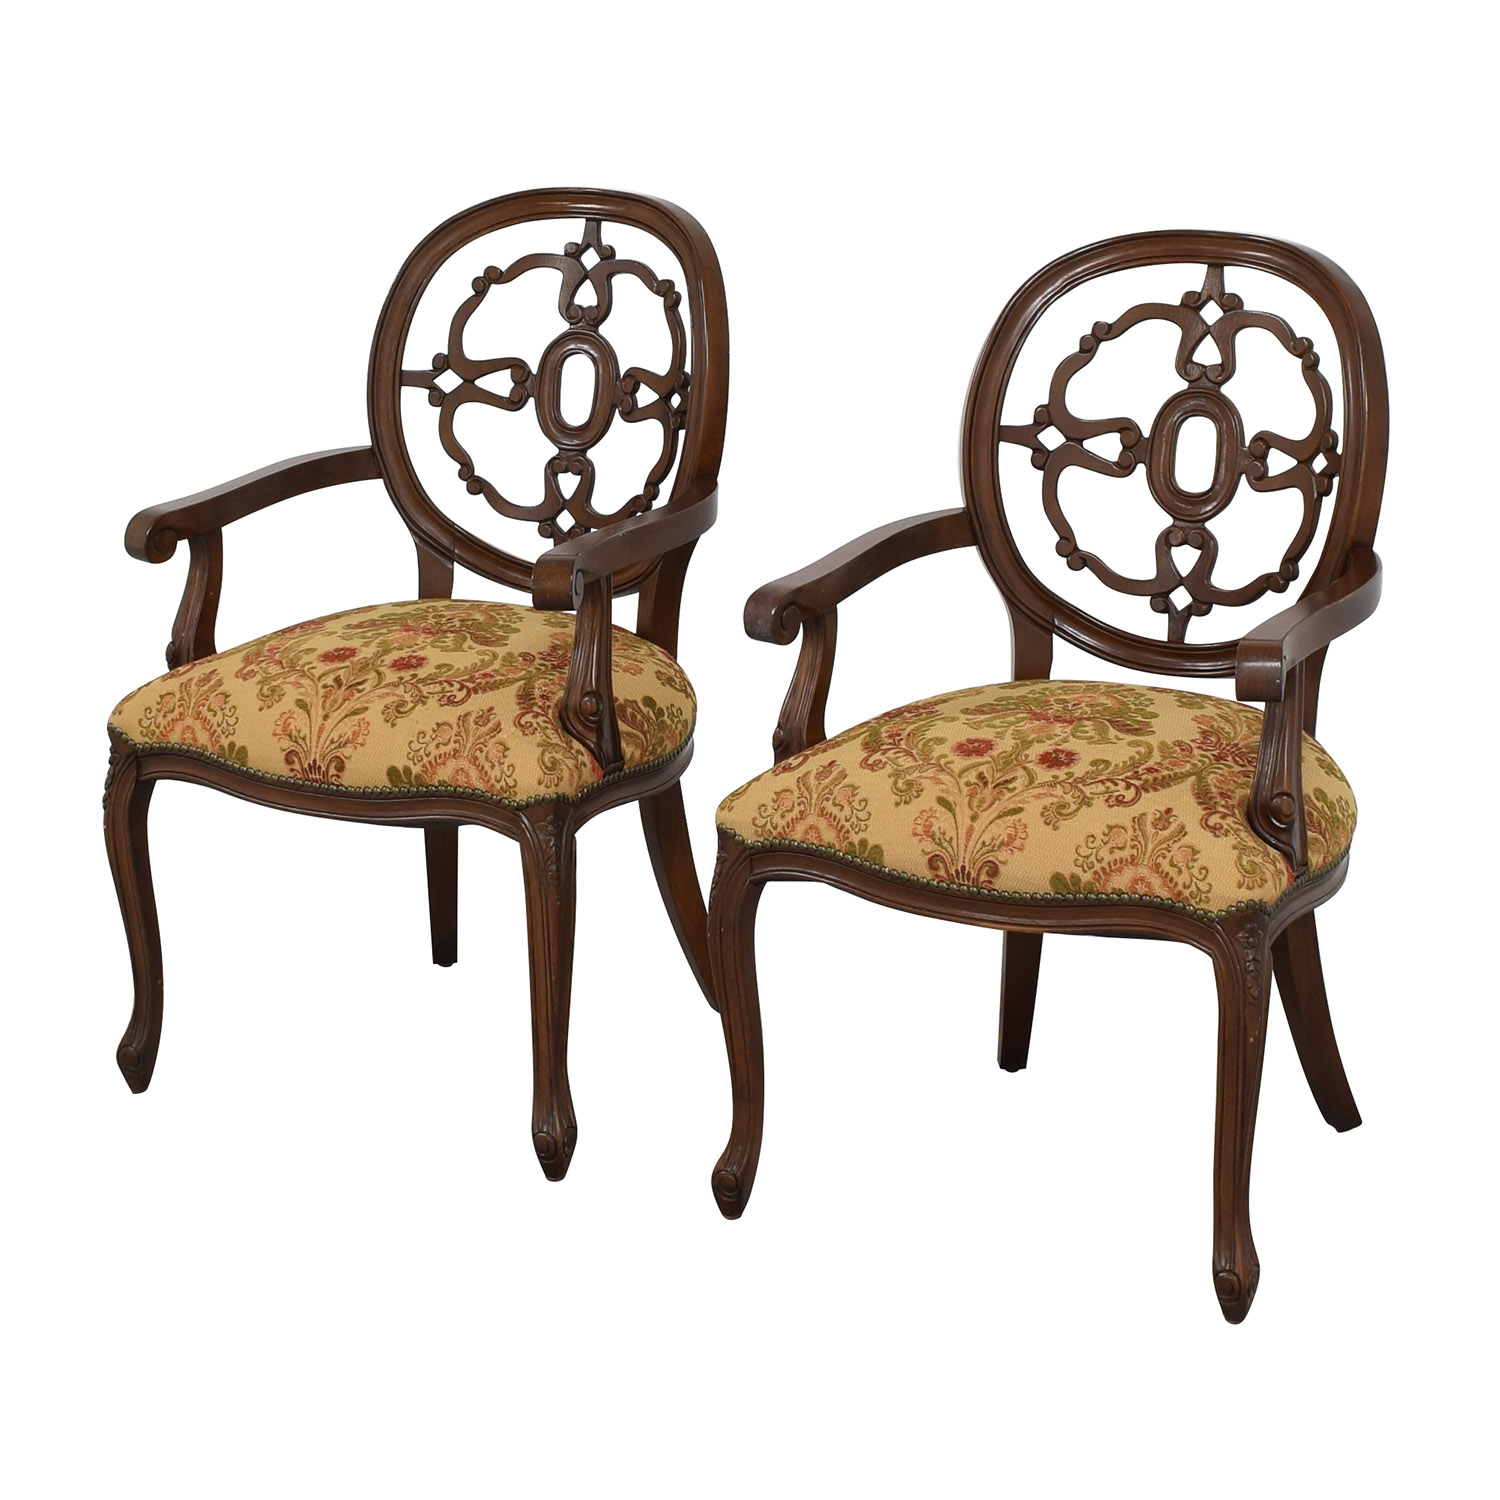 Floral Upholstered Armchairs with Antique Finish second hand